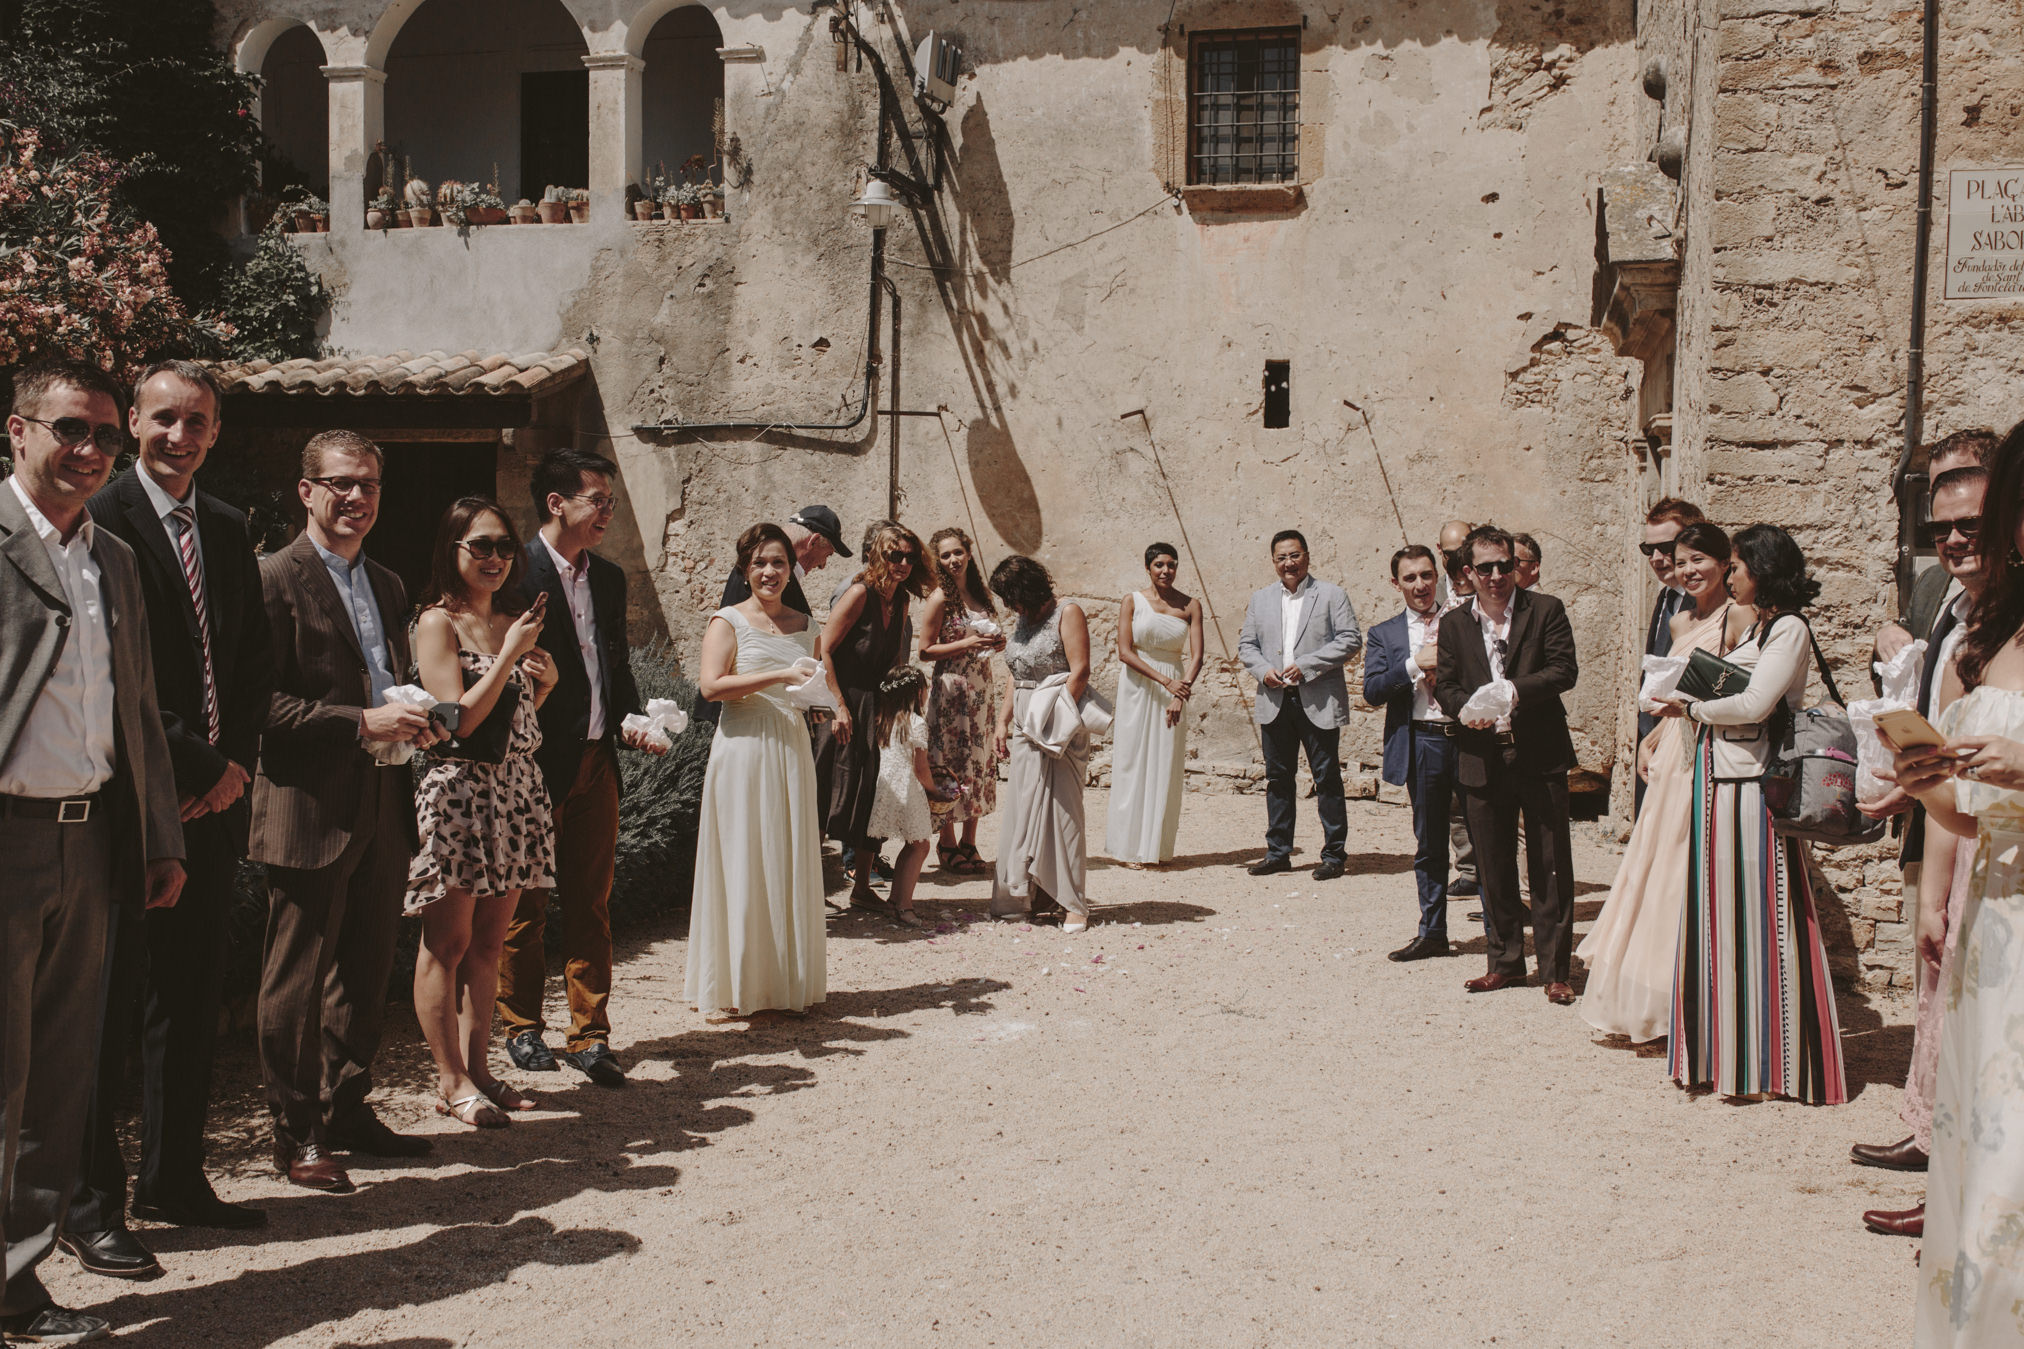 destination wedding photographer Girona Graciela Vilagudin Photography -65.jpg